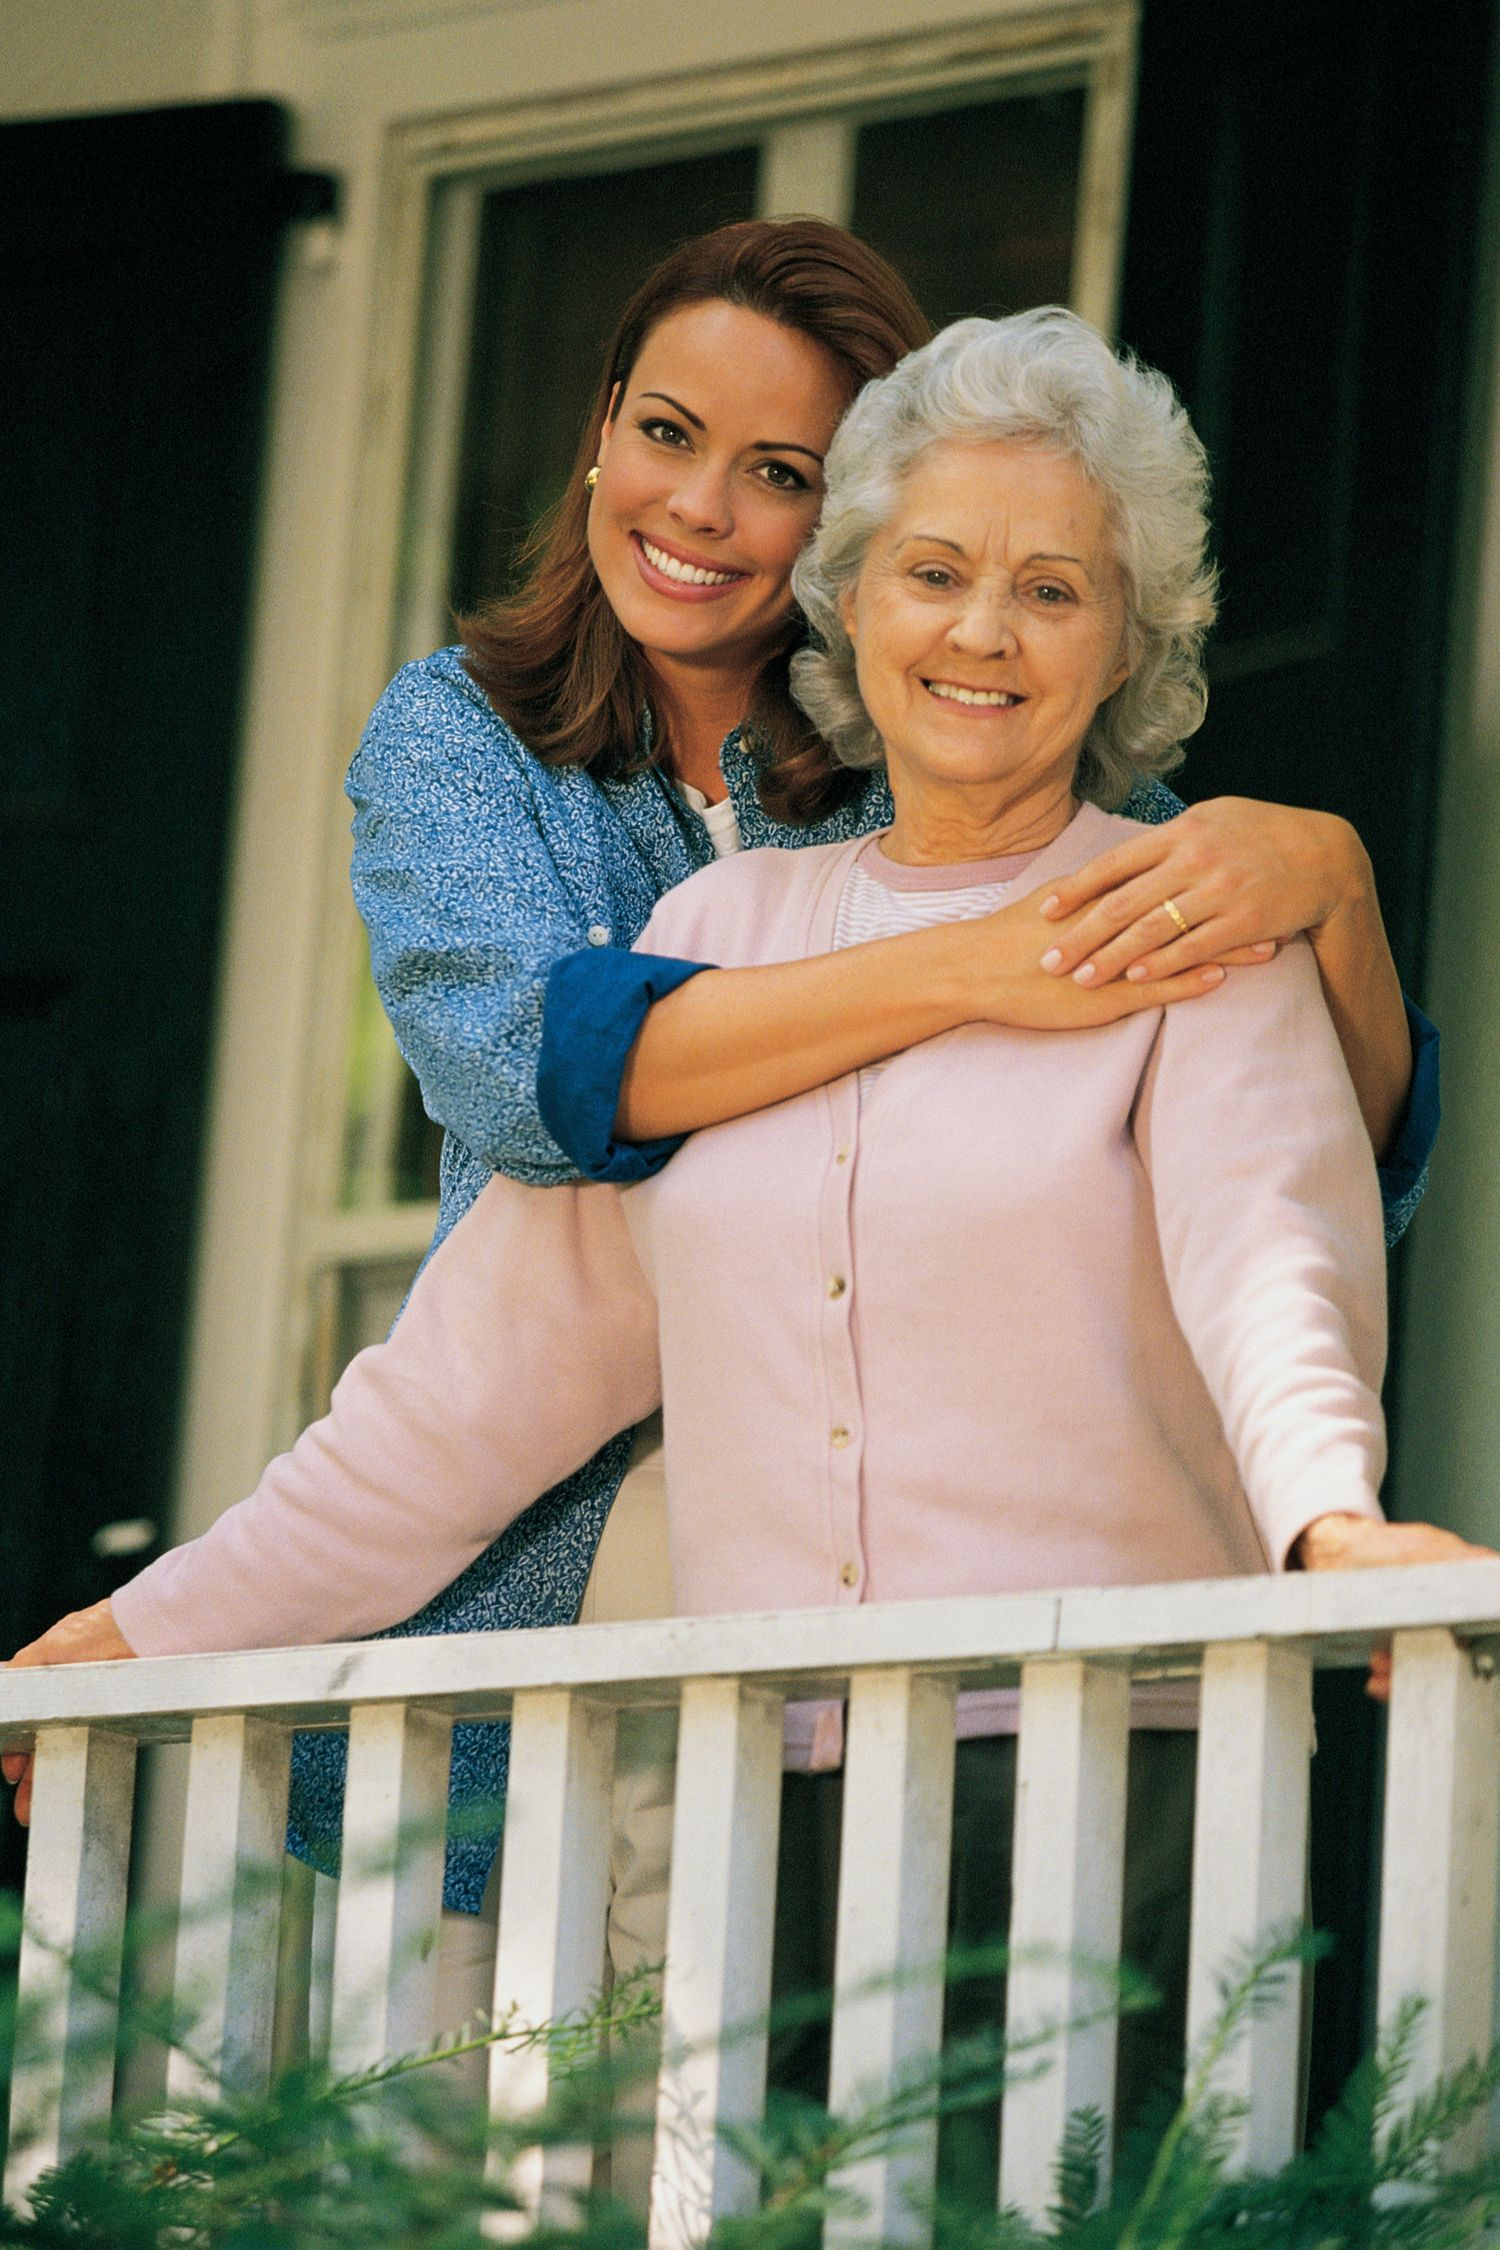 Manoa Senior Care Dedicated In Providing High Quality Senior Home Care In Honolulu Hawaii That Helps Lead A Healthy Lifesty Elderly Care Home Care Senior Care